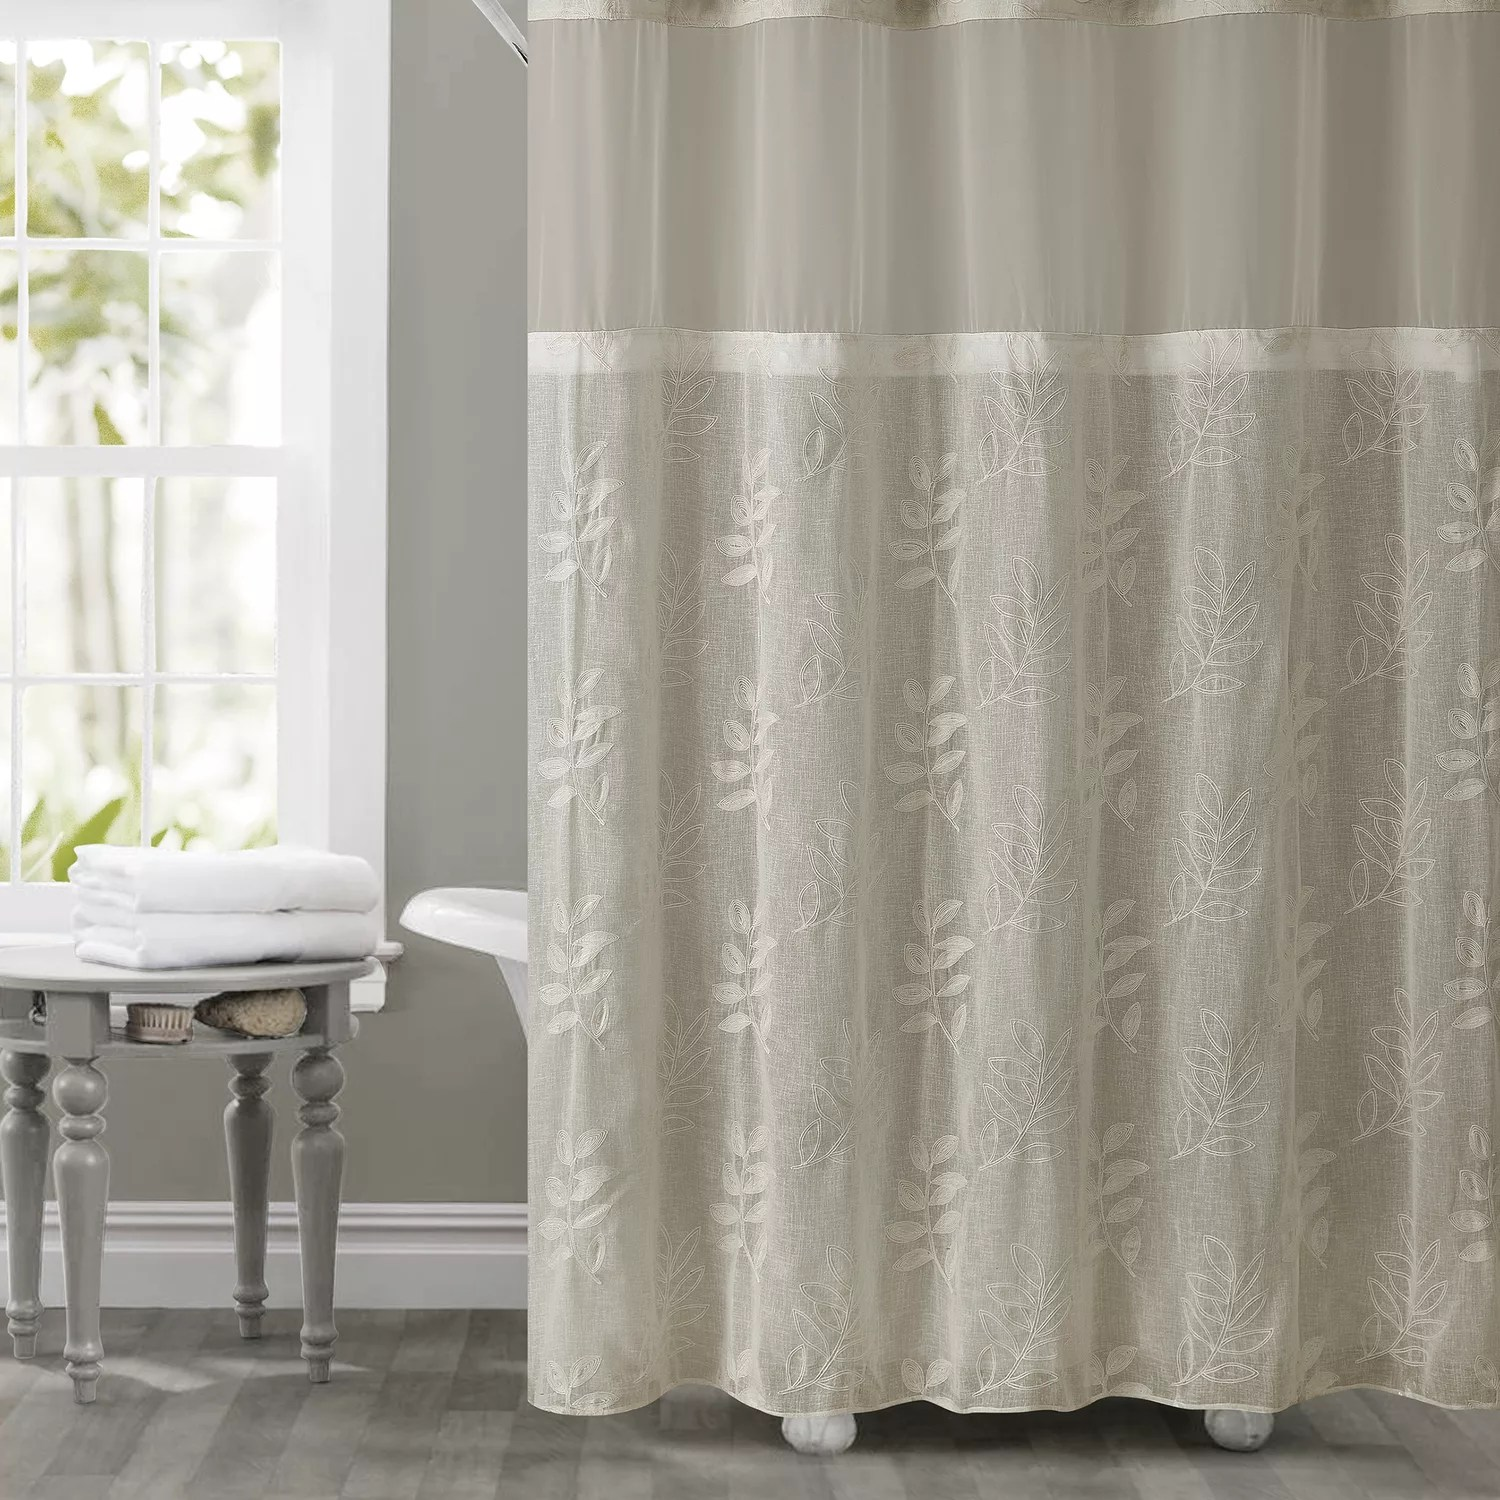 Hookless Palm Leaves Shower Curtain Amp Liner